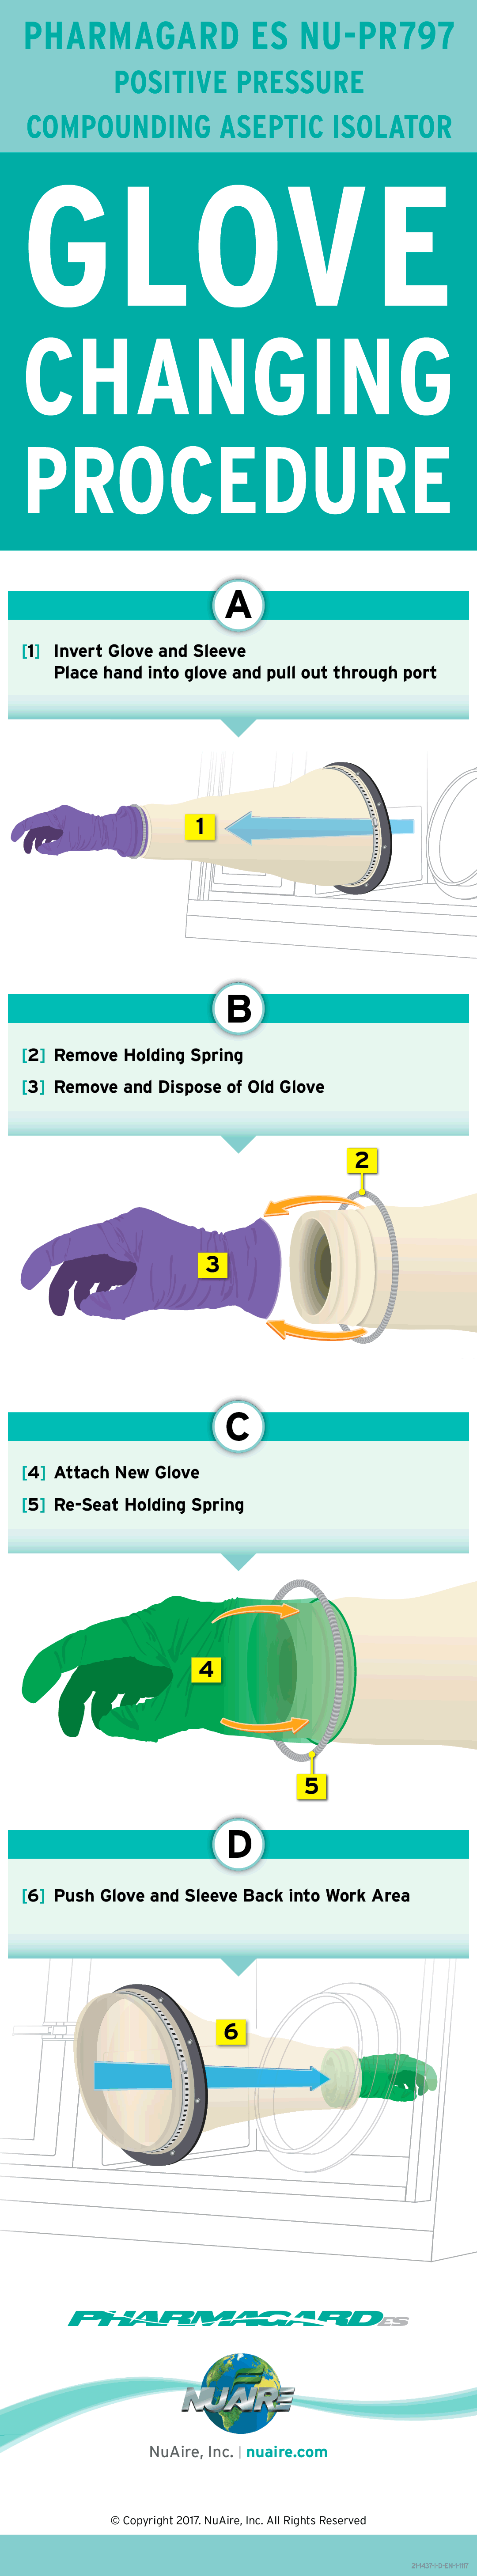 Compounding Aseptic Isolator (CAI) Glove Changing Procedure